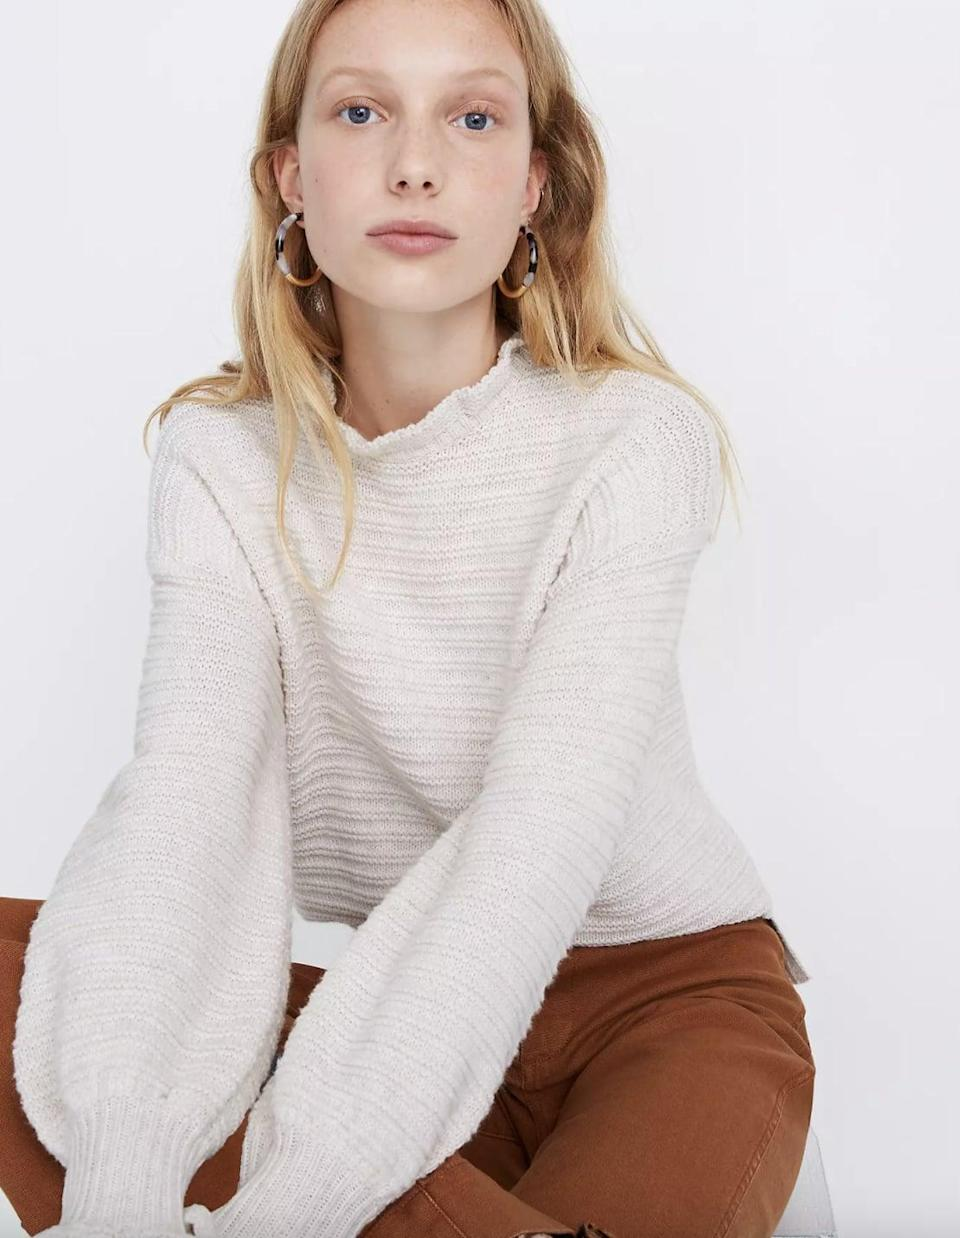 <p>This <span>Madewell Ruffle-Neck Pullover Sweater</span> ($50, originally $88) looks delicate and cute.</p>